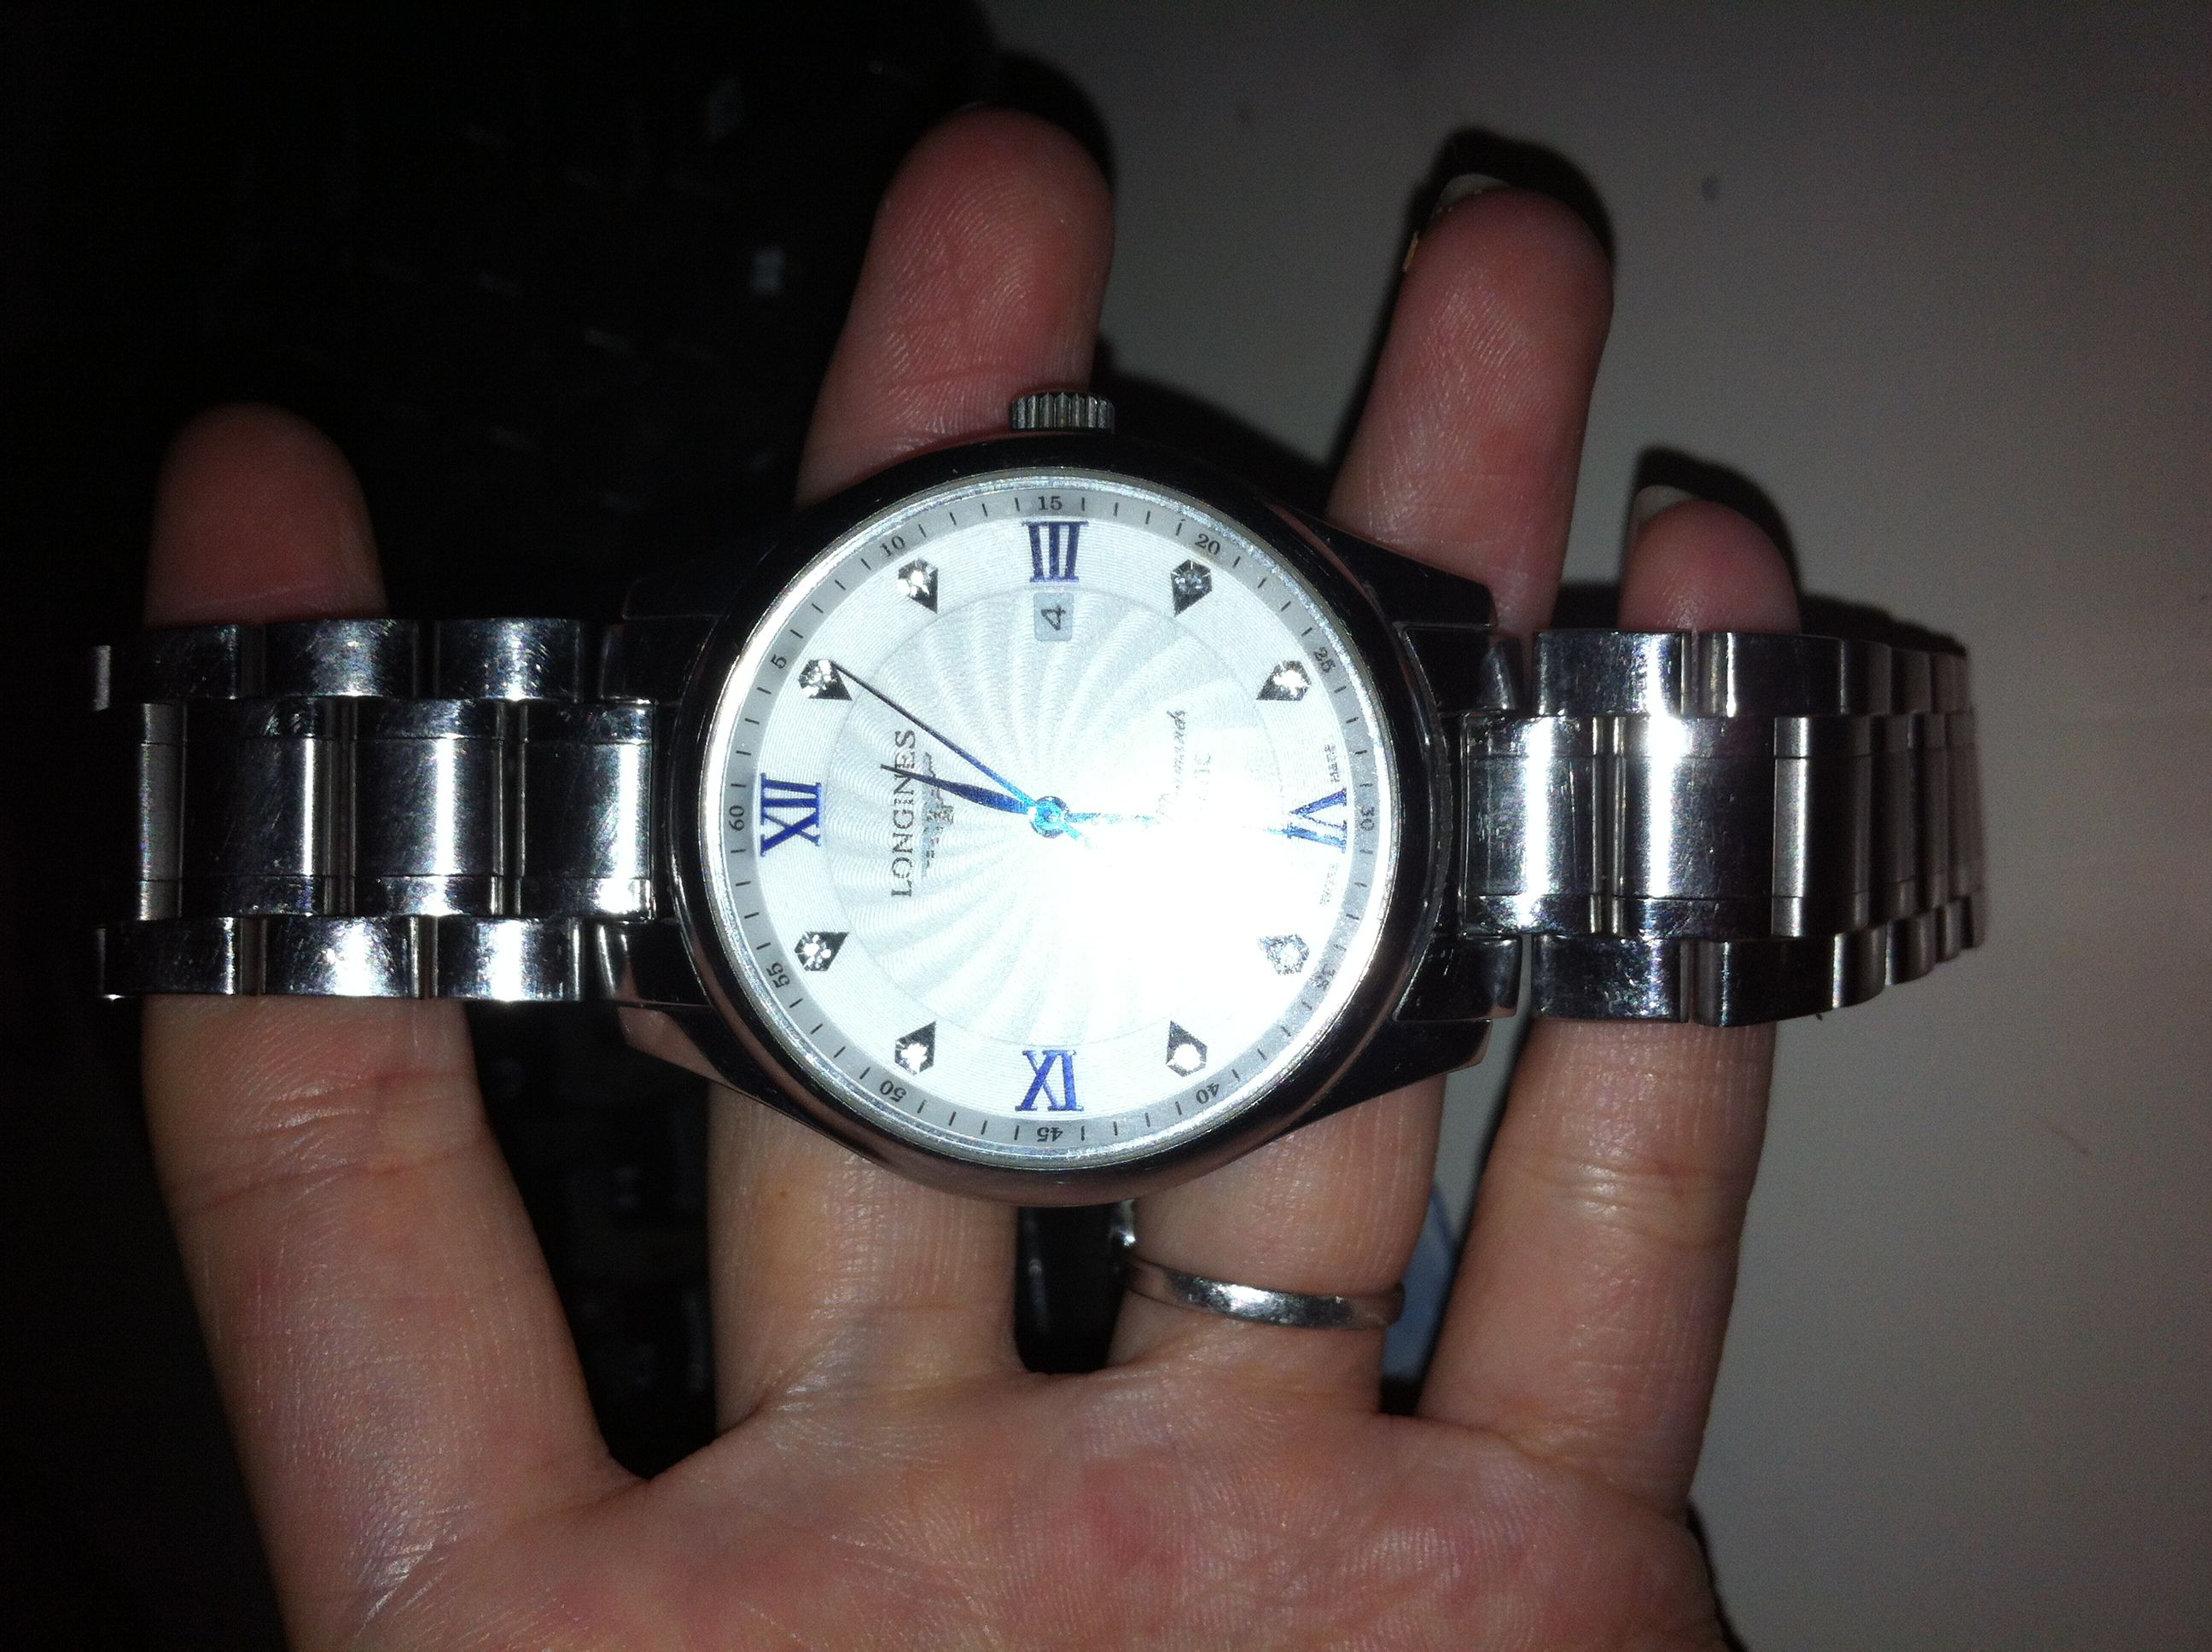 6aOe5Lh5LiL6L29MjAxMg==_4all stainless steel registr.mod.swiss made water resistant.